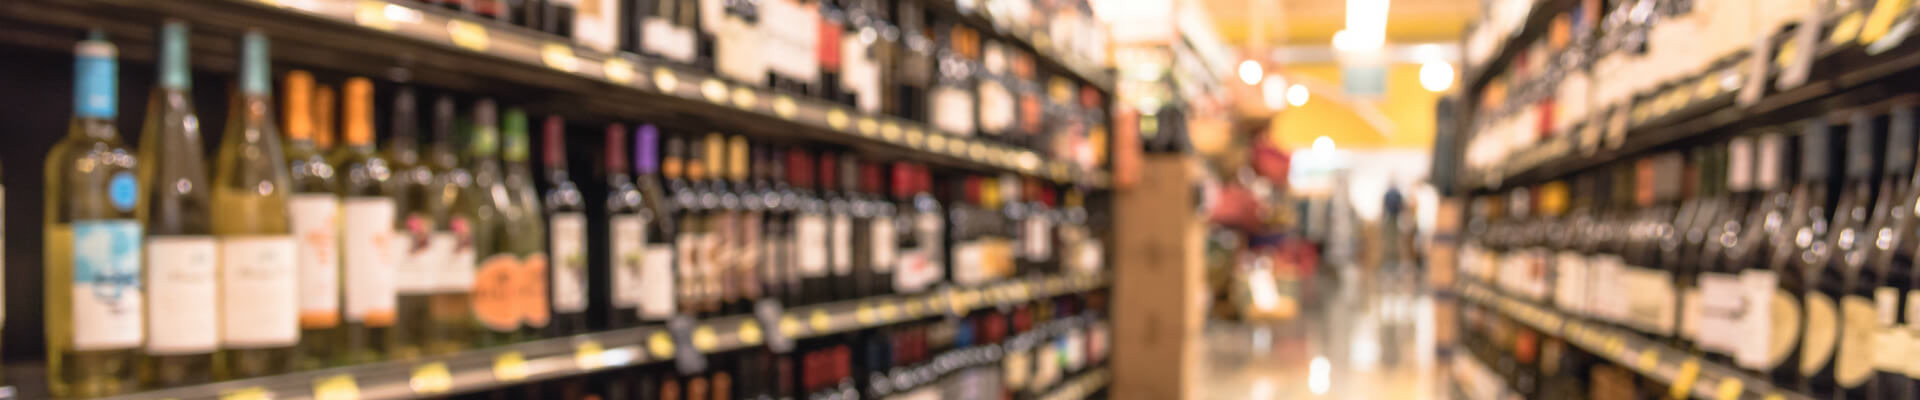 Liquor Store Point of Sale Systems in Canada